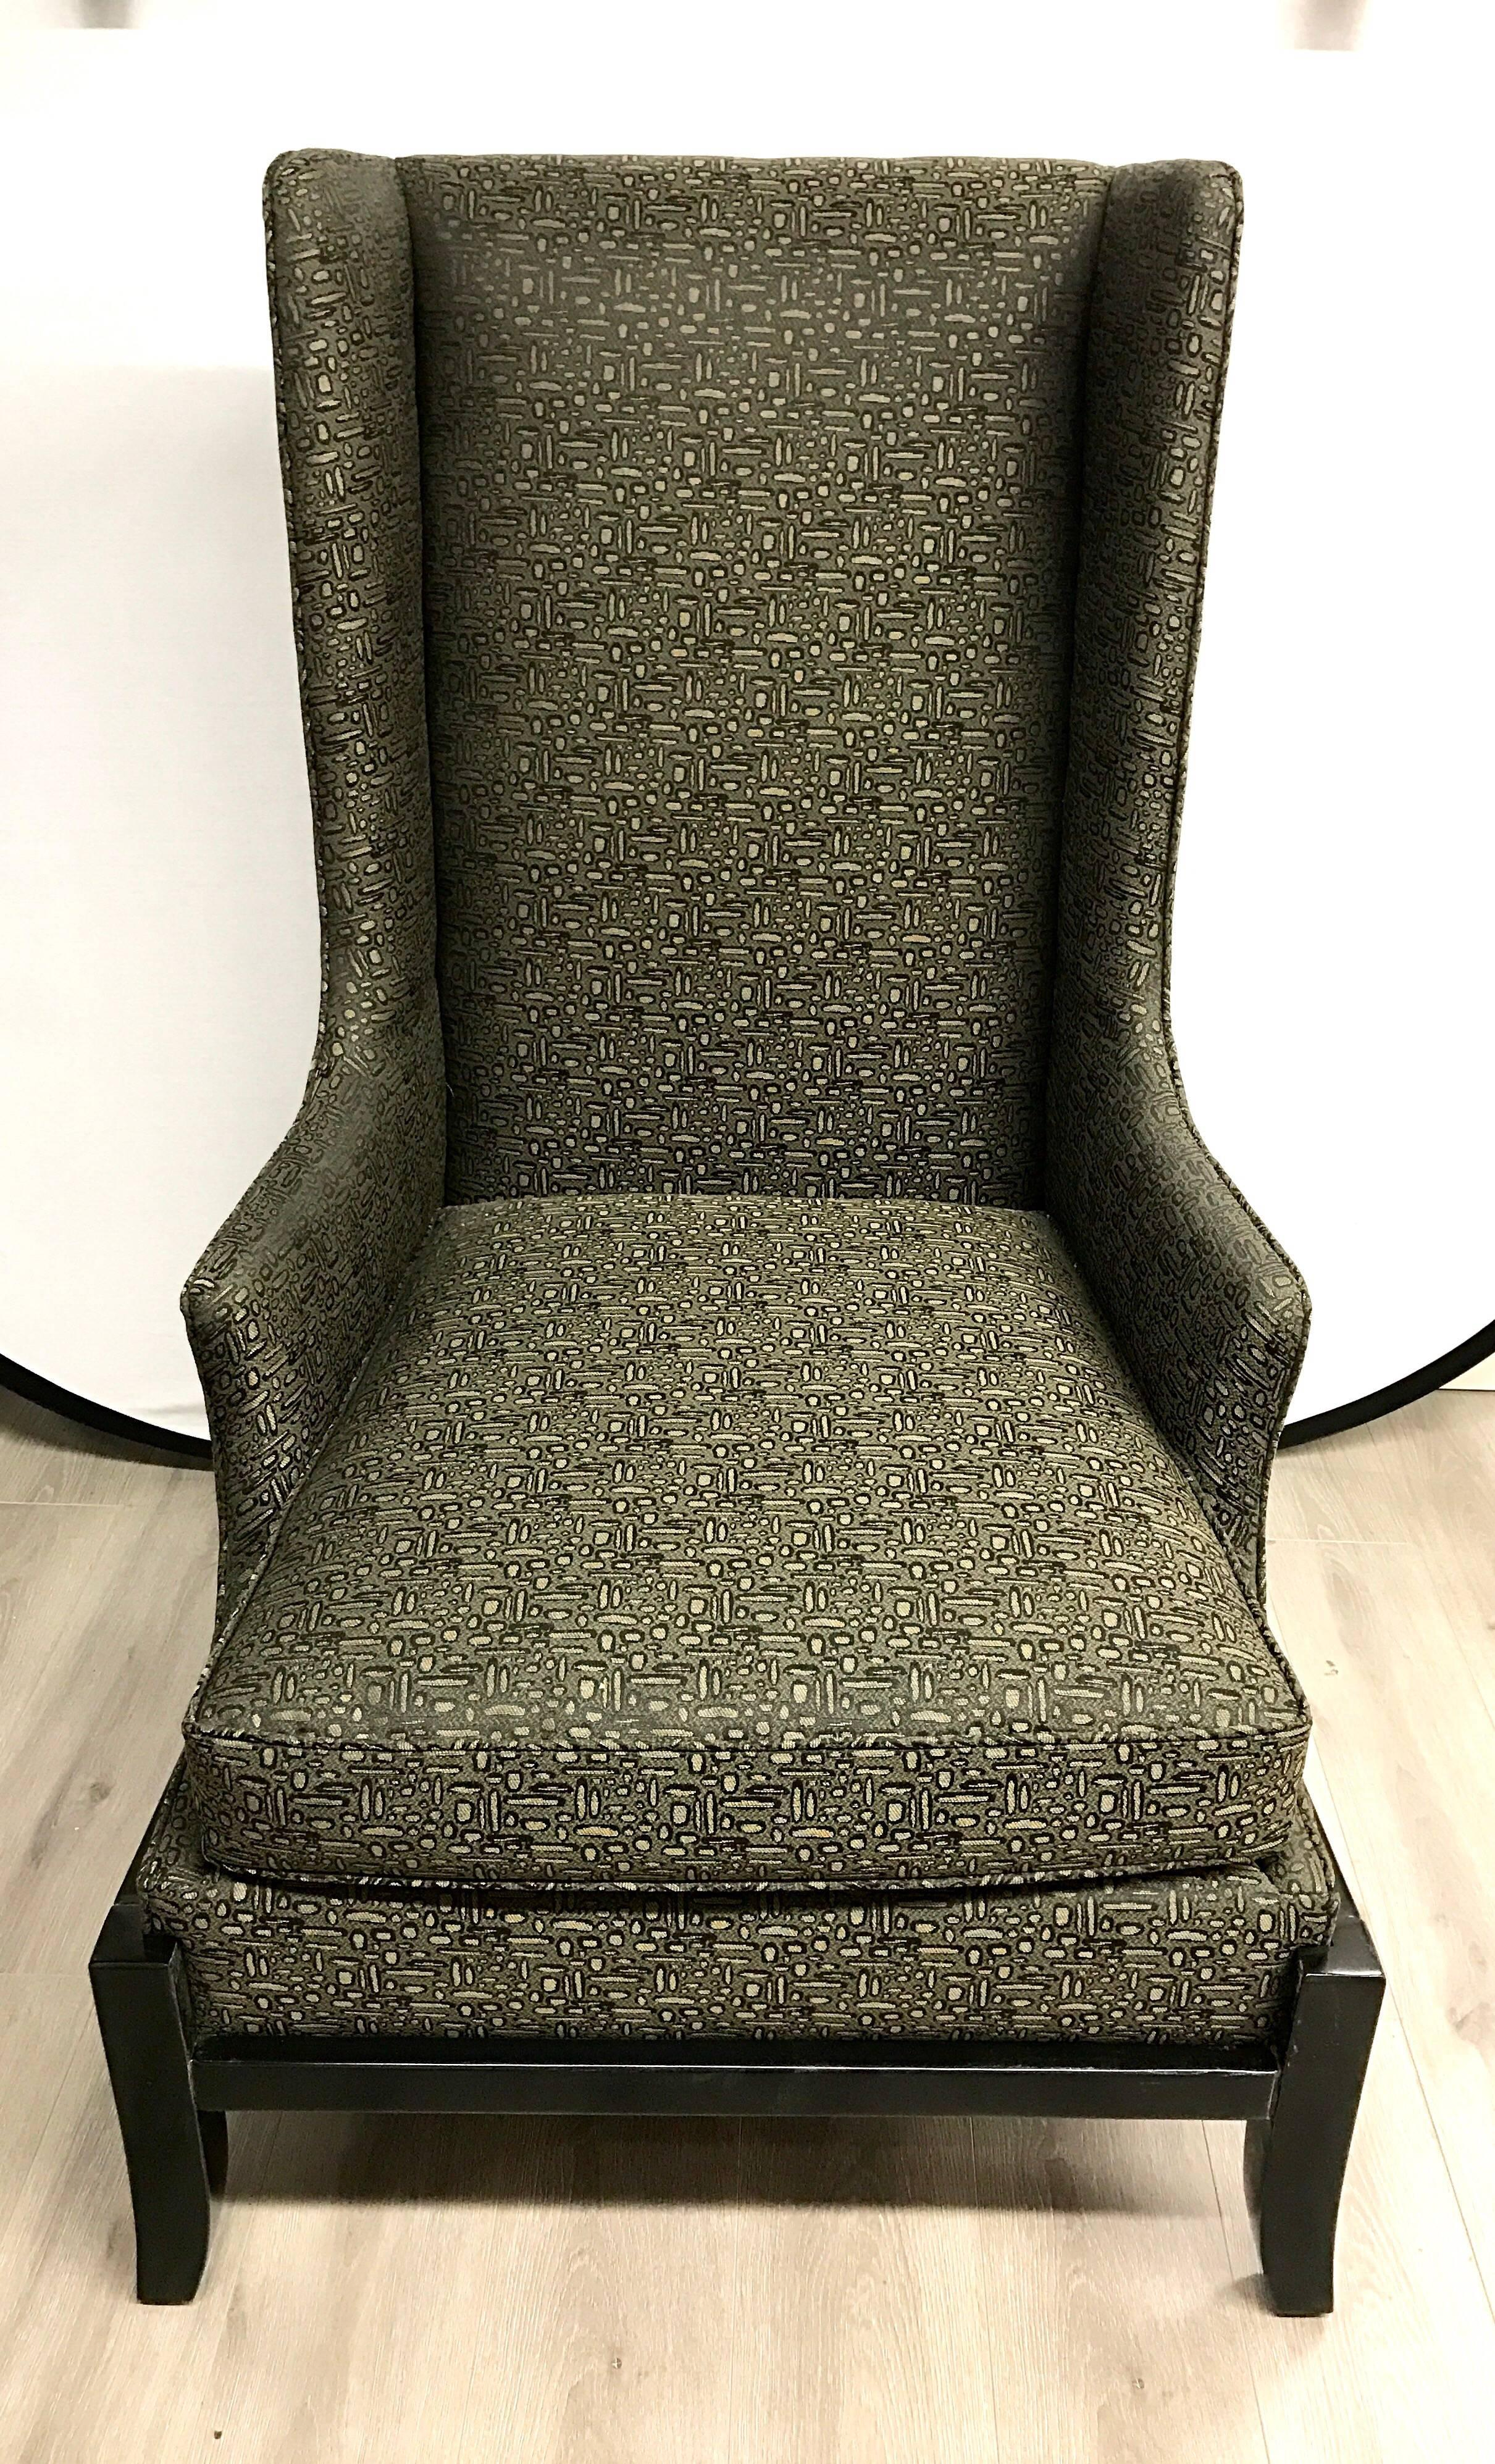 Coveted Baker Furniture Signed Large Wingback Chair With Ebonized Base.  Fabric Is Pewter And Black